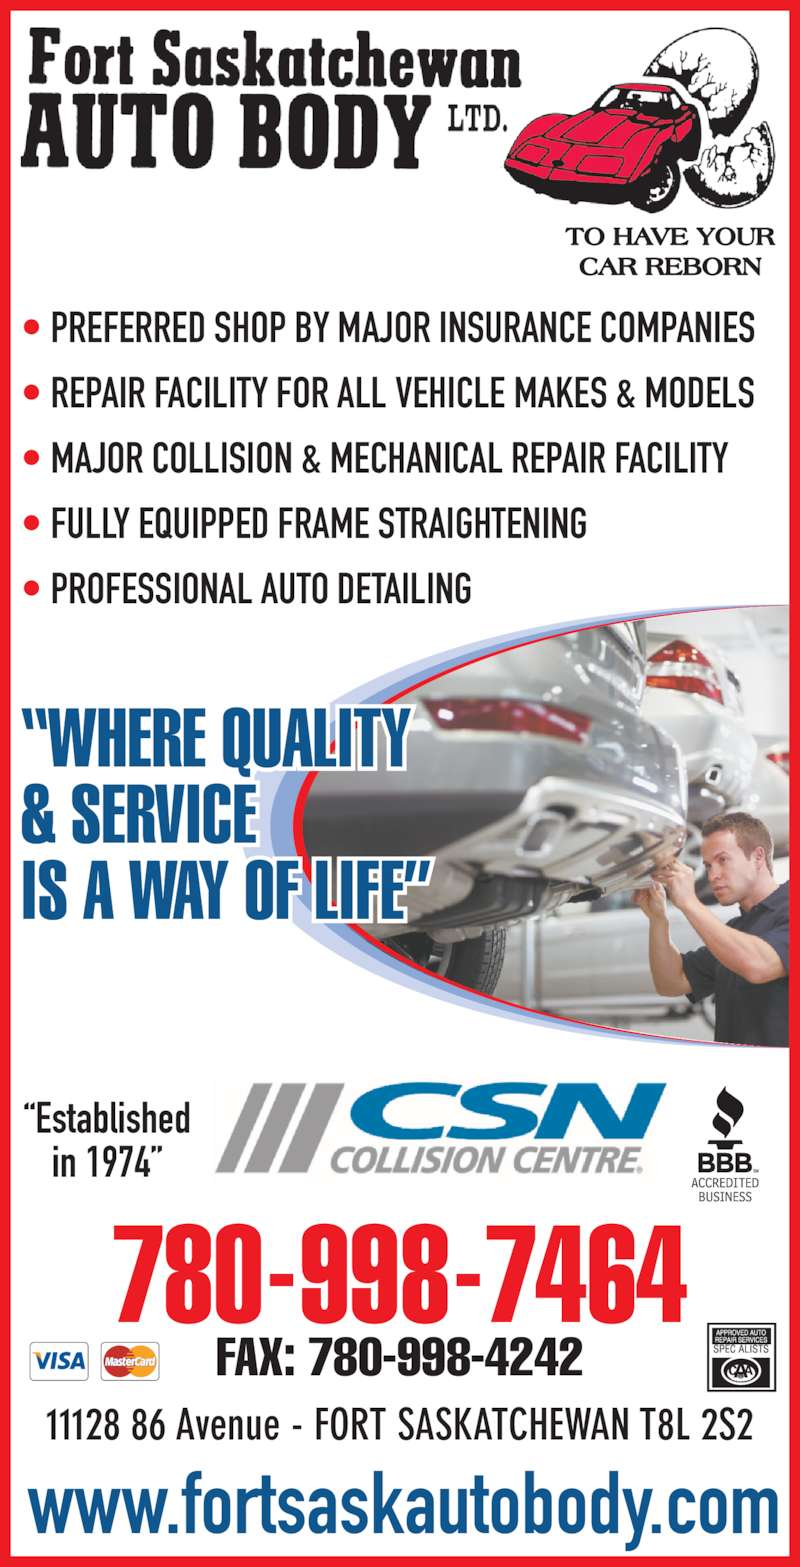 Fort Saskatchewan Auto Body Ltd (780-998-7464) - Display Ad - ? PREFERRED SHOP BY MAJOR INSURANCE COMPANIES ? REPAIR FACILITY FOR ALL VEHICLE MAKES & MODELS ? MAJOR COLLISION & MECHANICAL REPAIR FACILITY ? FULLY EQUIPPED FRAME STRAIGHTENING ? PROFESSIONAL AUTO DETAILING ?WHERE QUALITY & SERVICE IS A WAY OF LIFE? www.fortsaskautobody.com 780-998-7464 FAX: 780-998-4242 ?Established in 1974? 11128 86 Avenue - FORT SASKATCHEWAN T8L 2S2